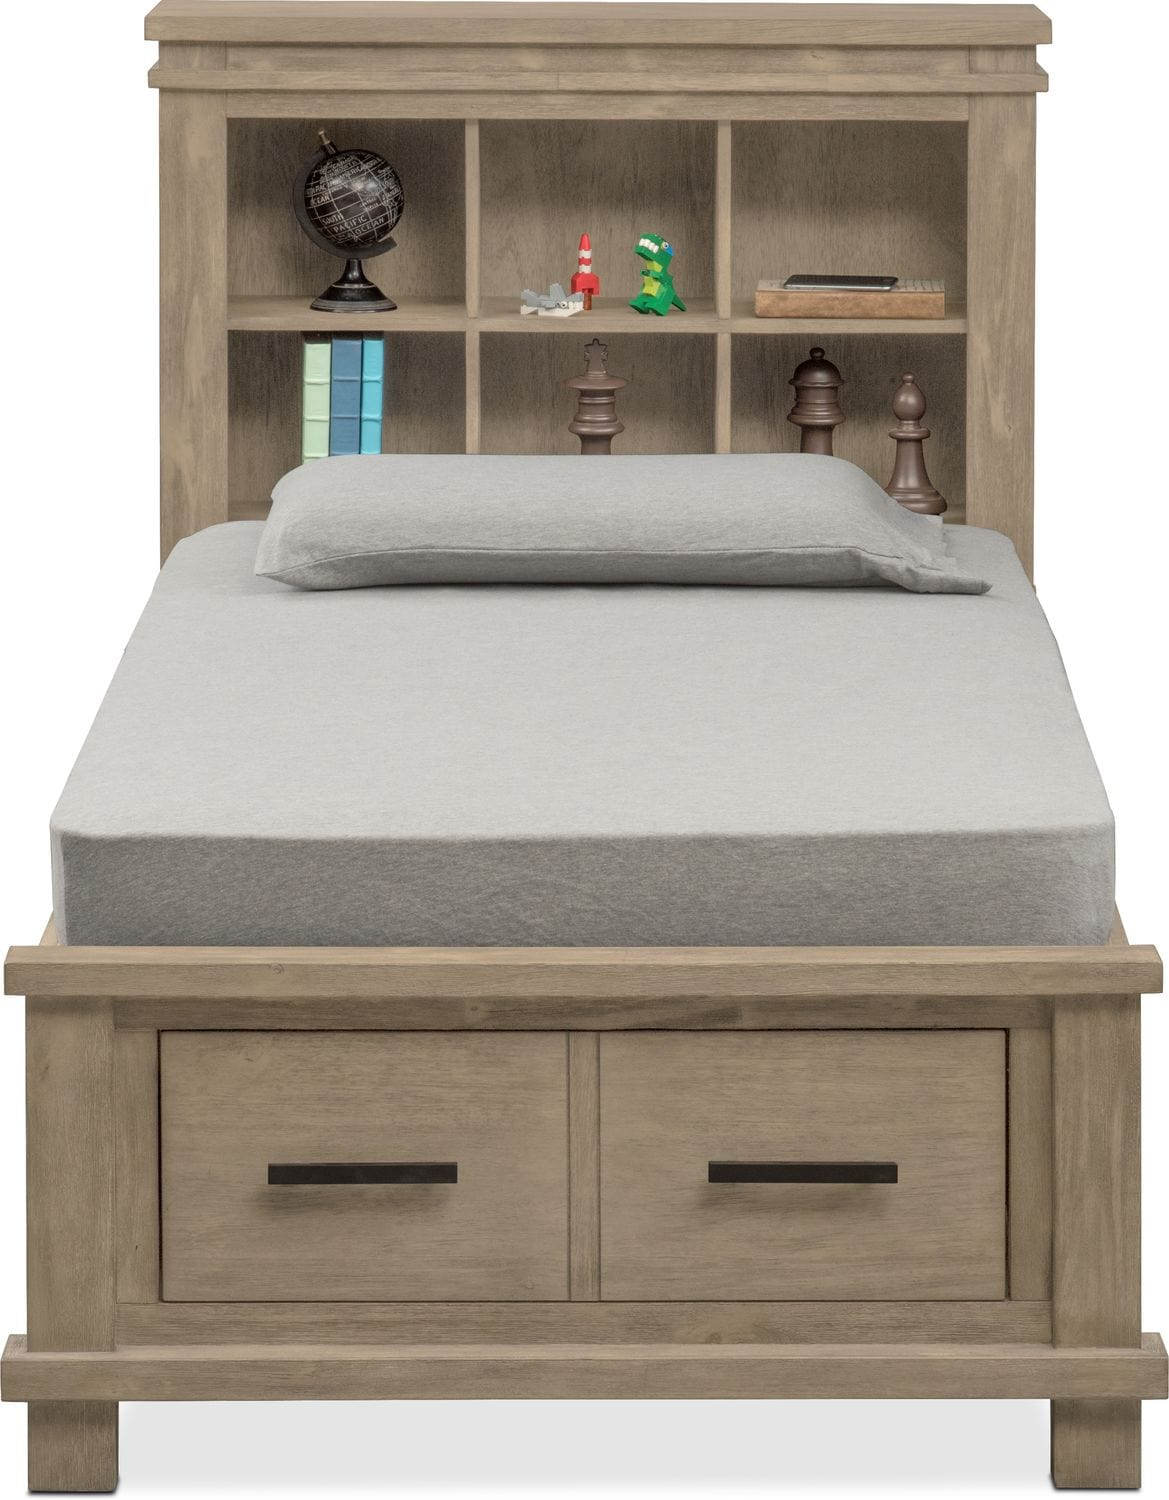 Trend White Twin Bedroom Set Painting